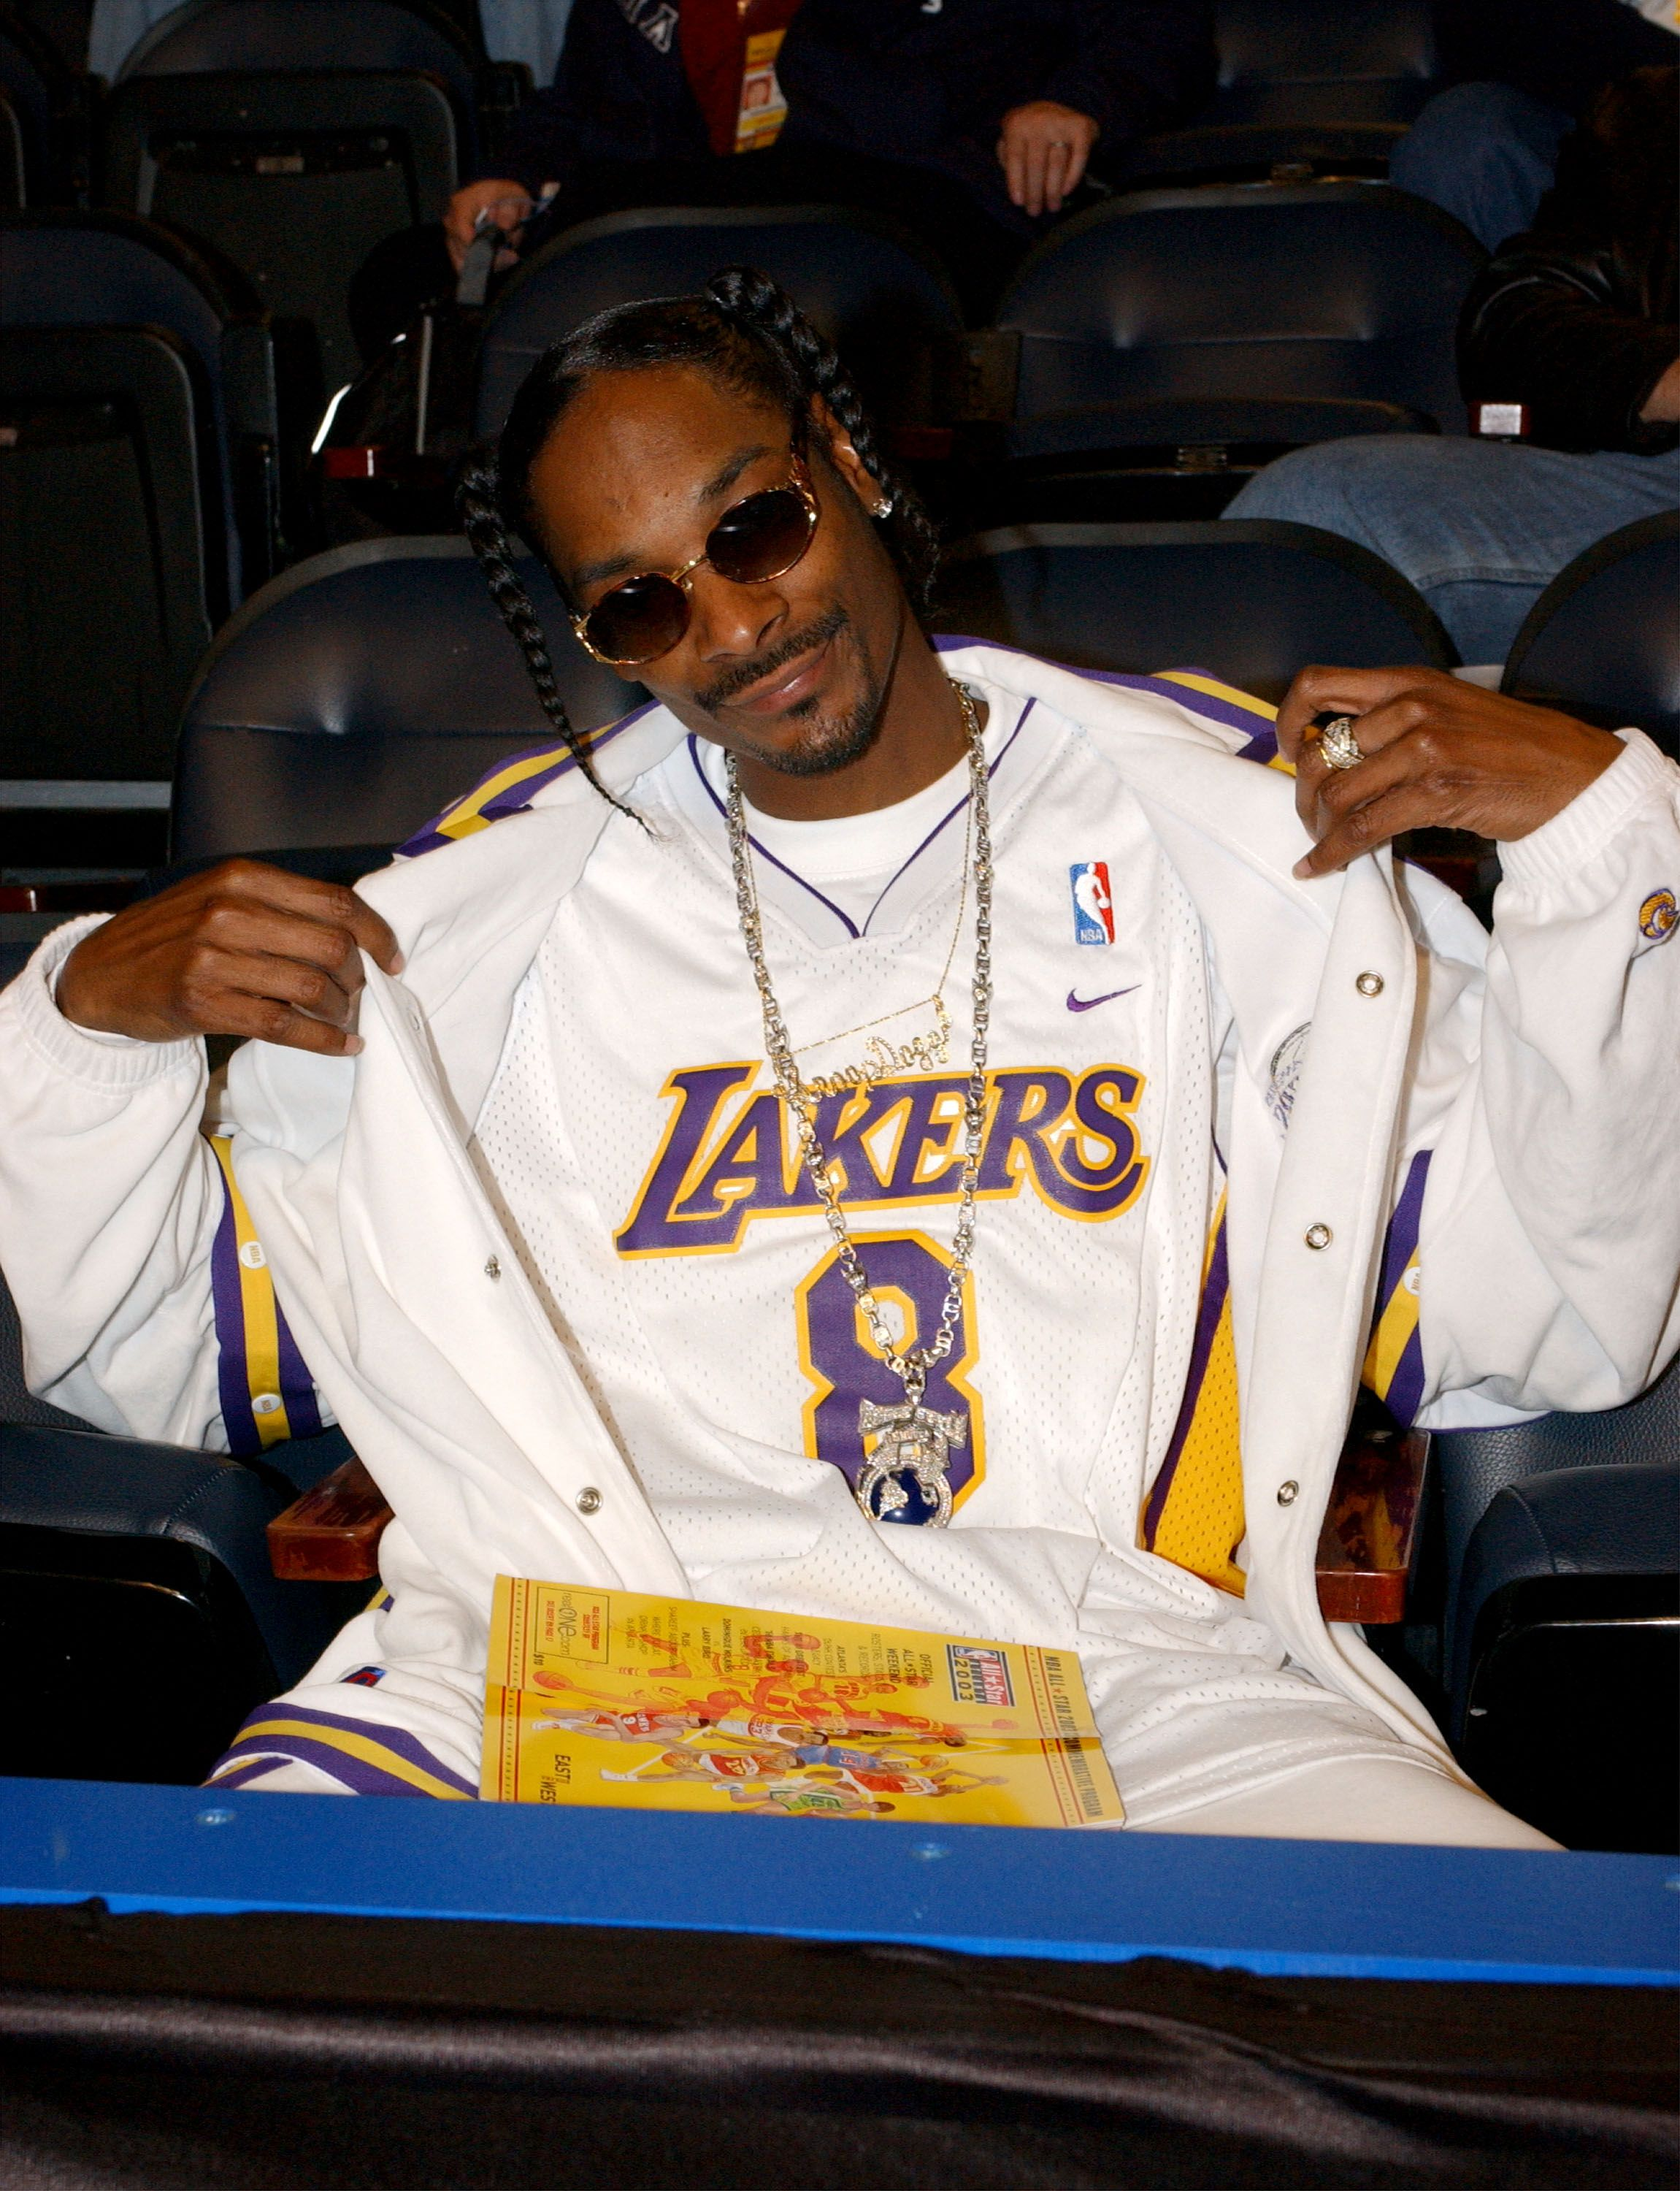 Snoop Dogg at the 2003 NBA All-Star game at the Phillips Arena on February 9, 2003 in Atlanta, Georgia. | Source: Getty Images